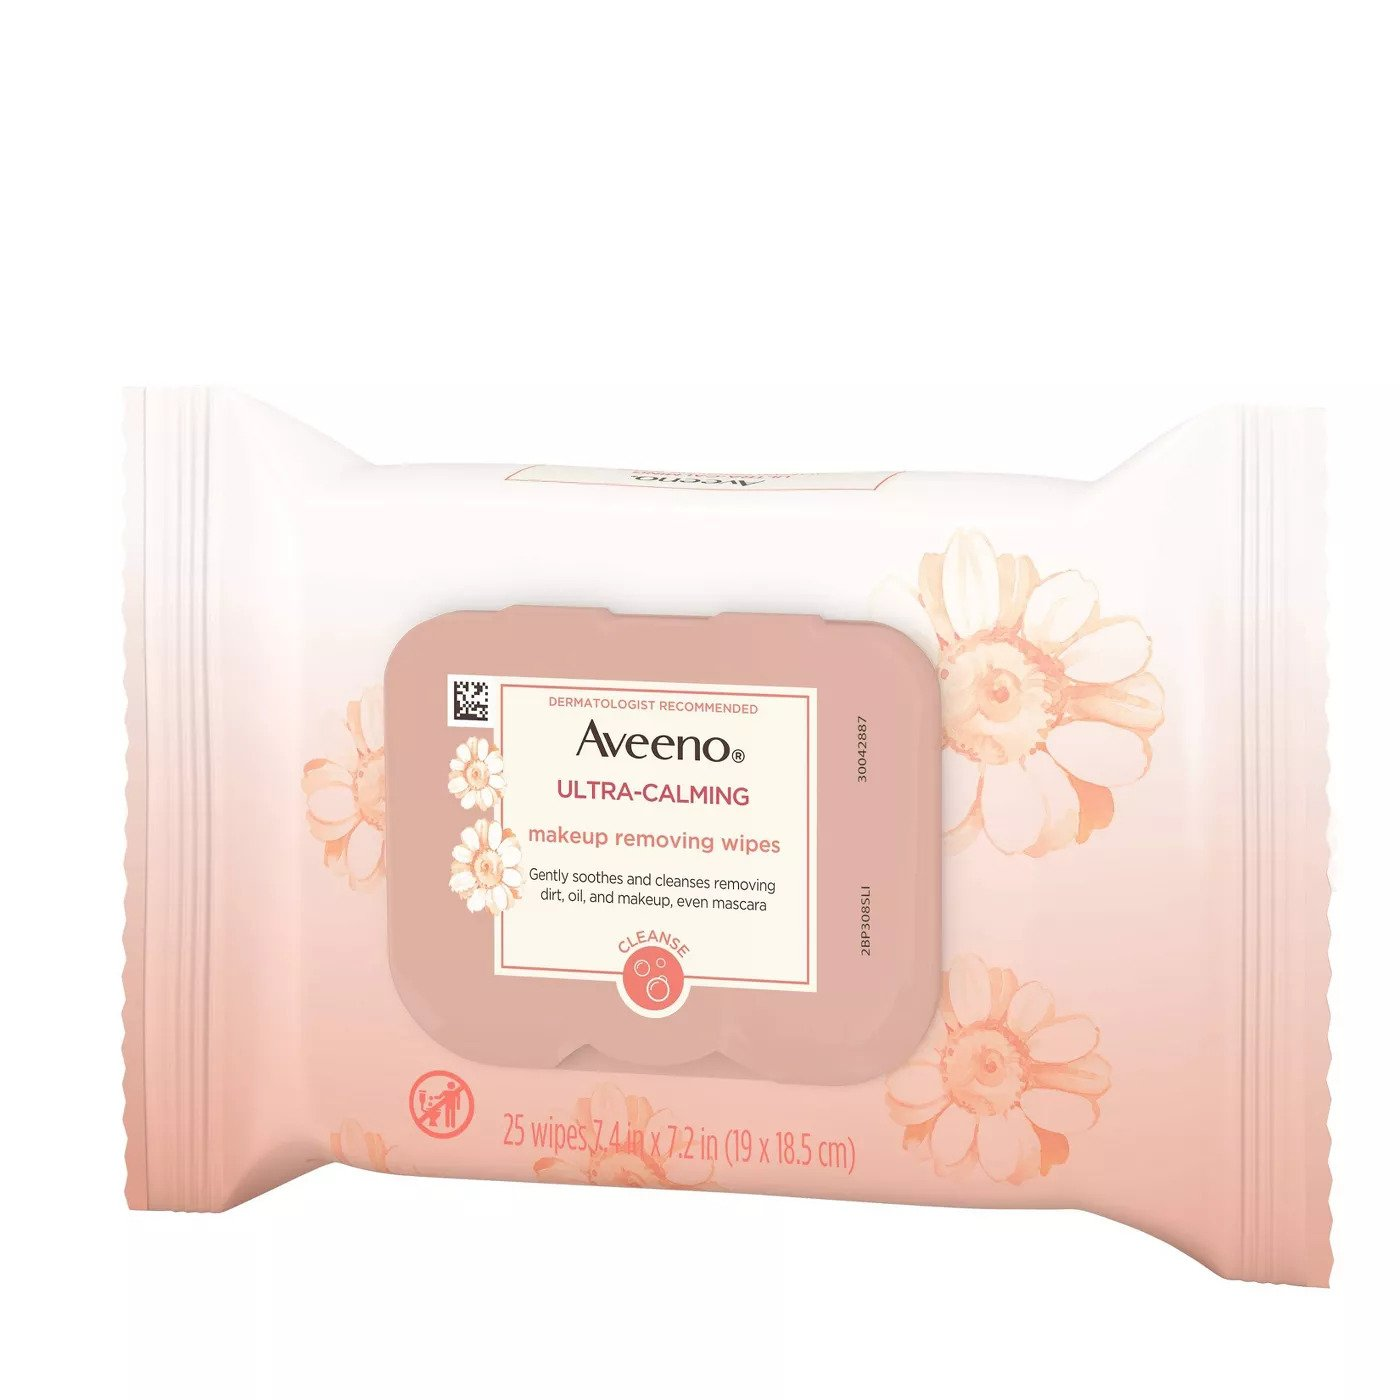 Aveeno Ultra-Calming Cleansing Makeup Remover Wipes